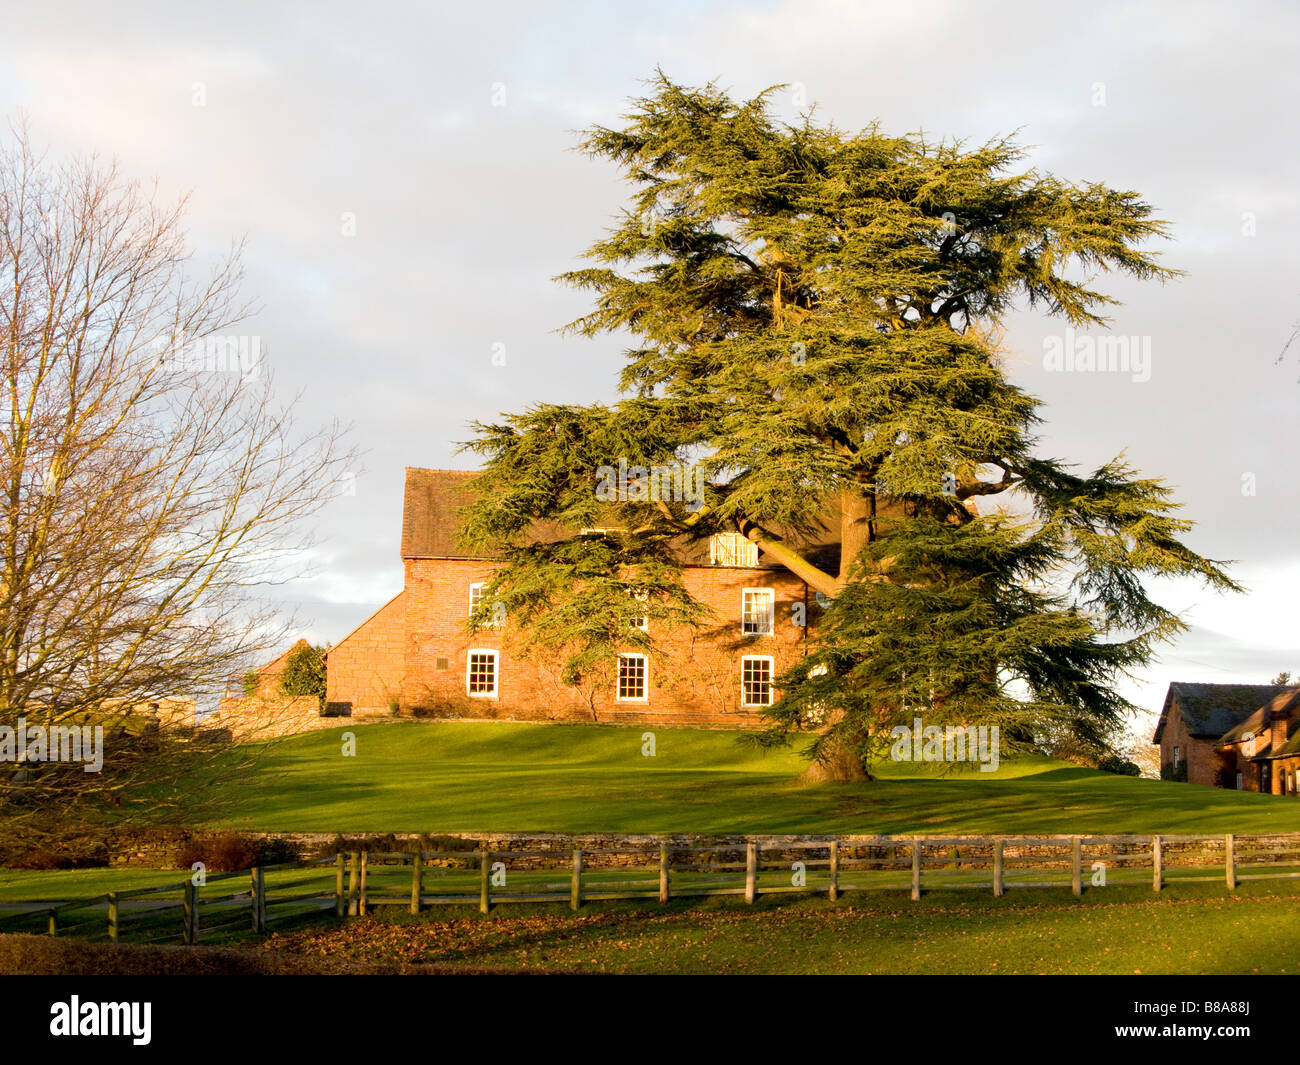 Cedar of Lebanon, an ornamental conifer, in front of house - Stock Image